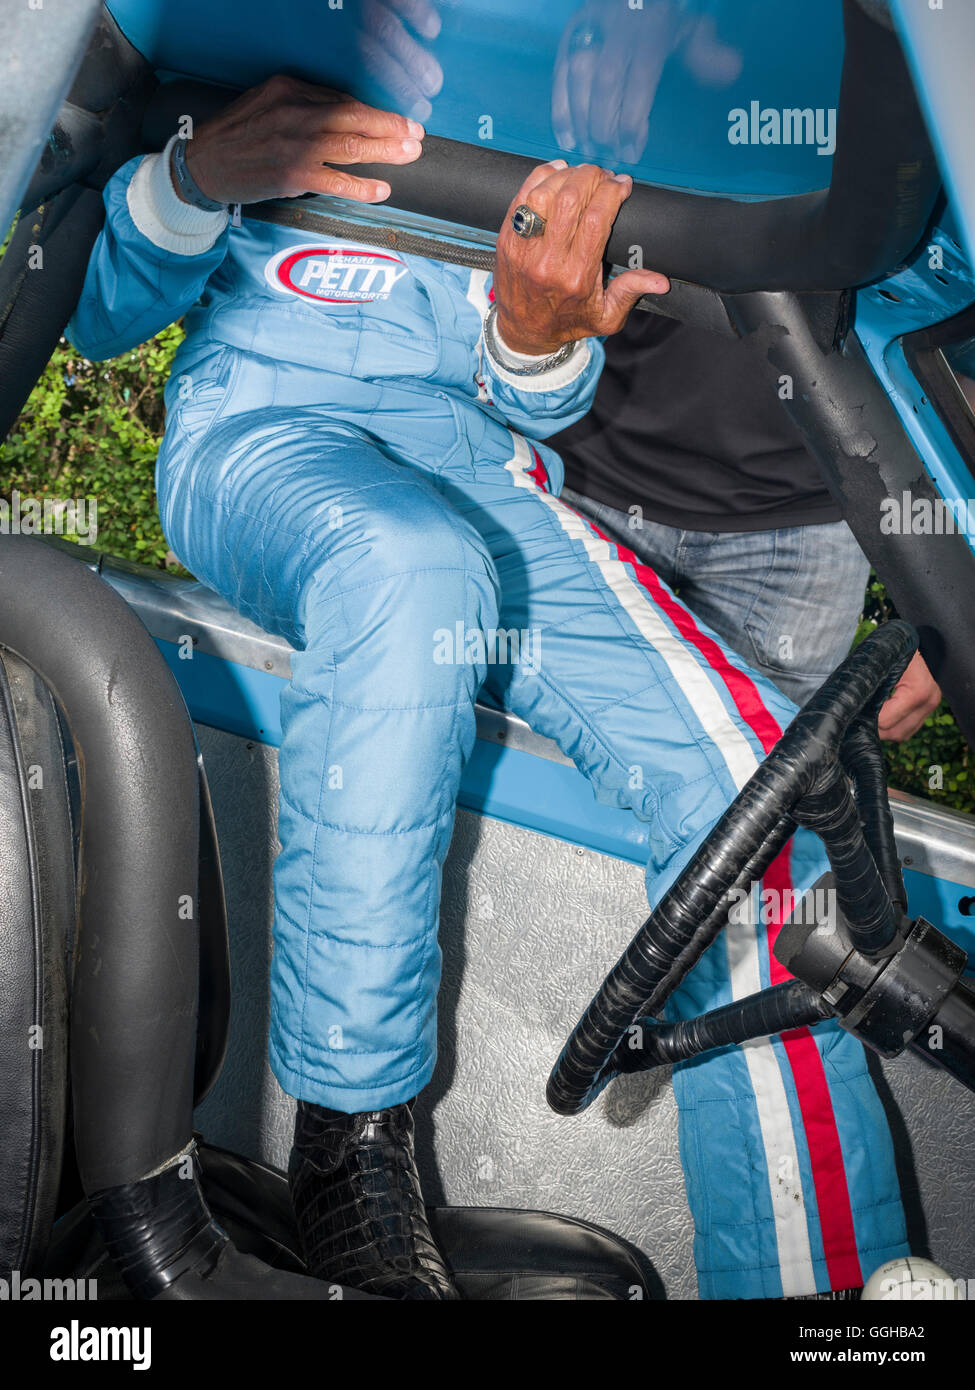 Richard Petty, winner in 200 NASCAR races in the USA, Goodwood Festival of Speed 2014, racing, car racing, classic - Stock Image